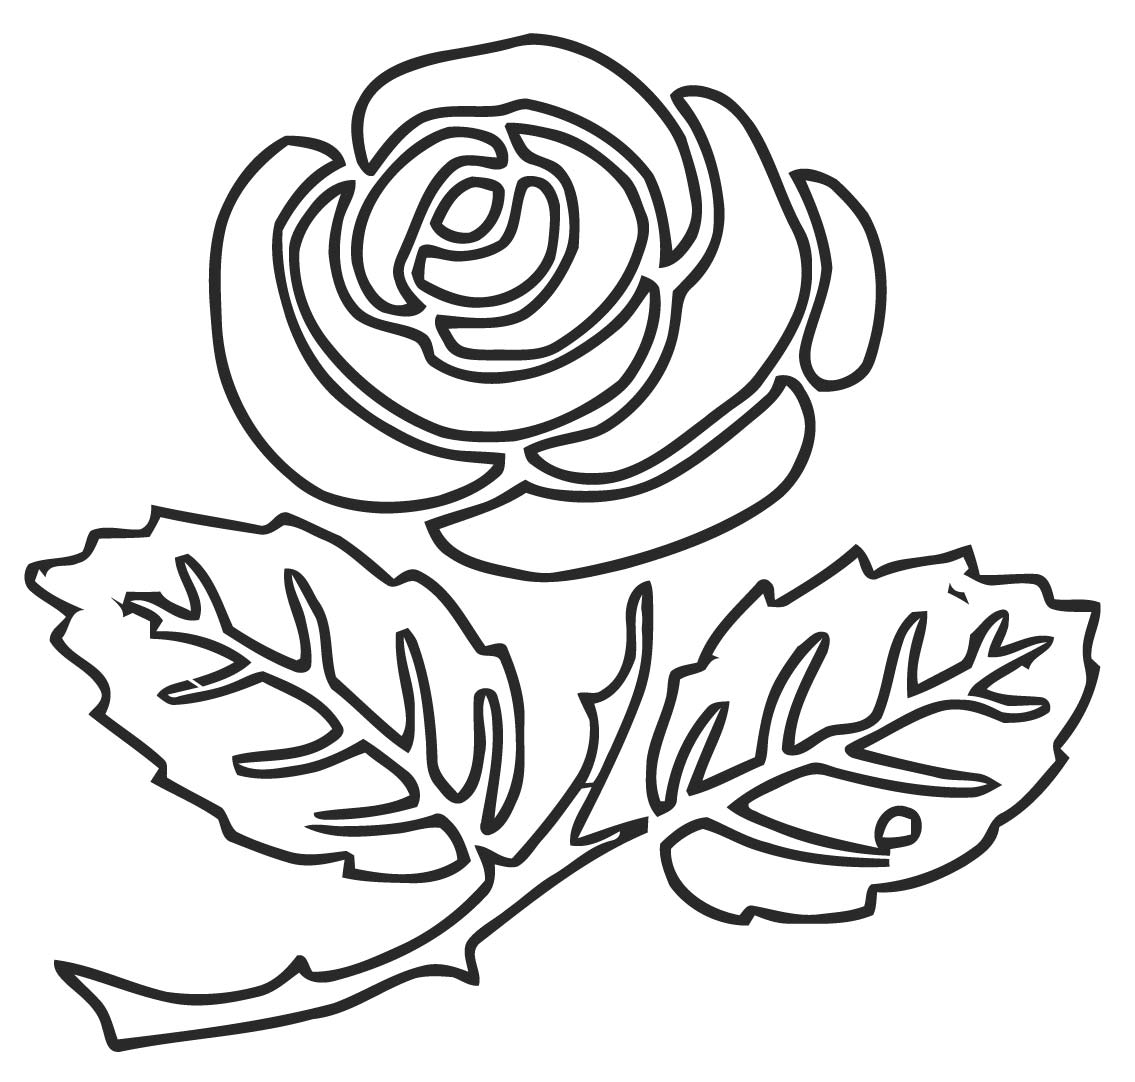 Rose M9 Coloring Page